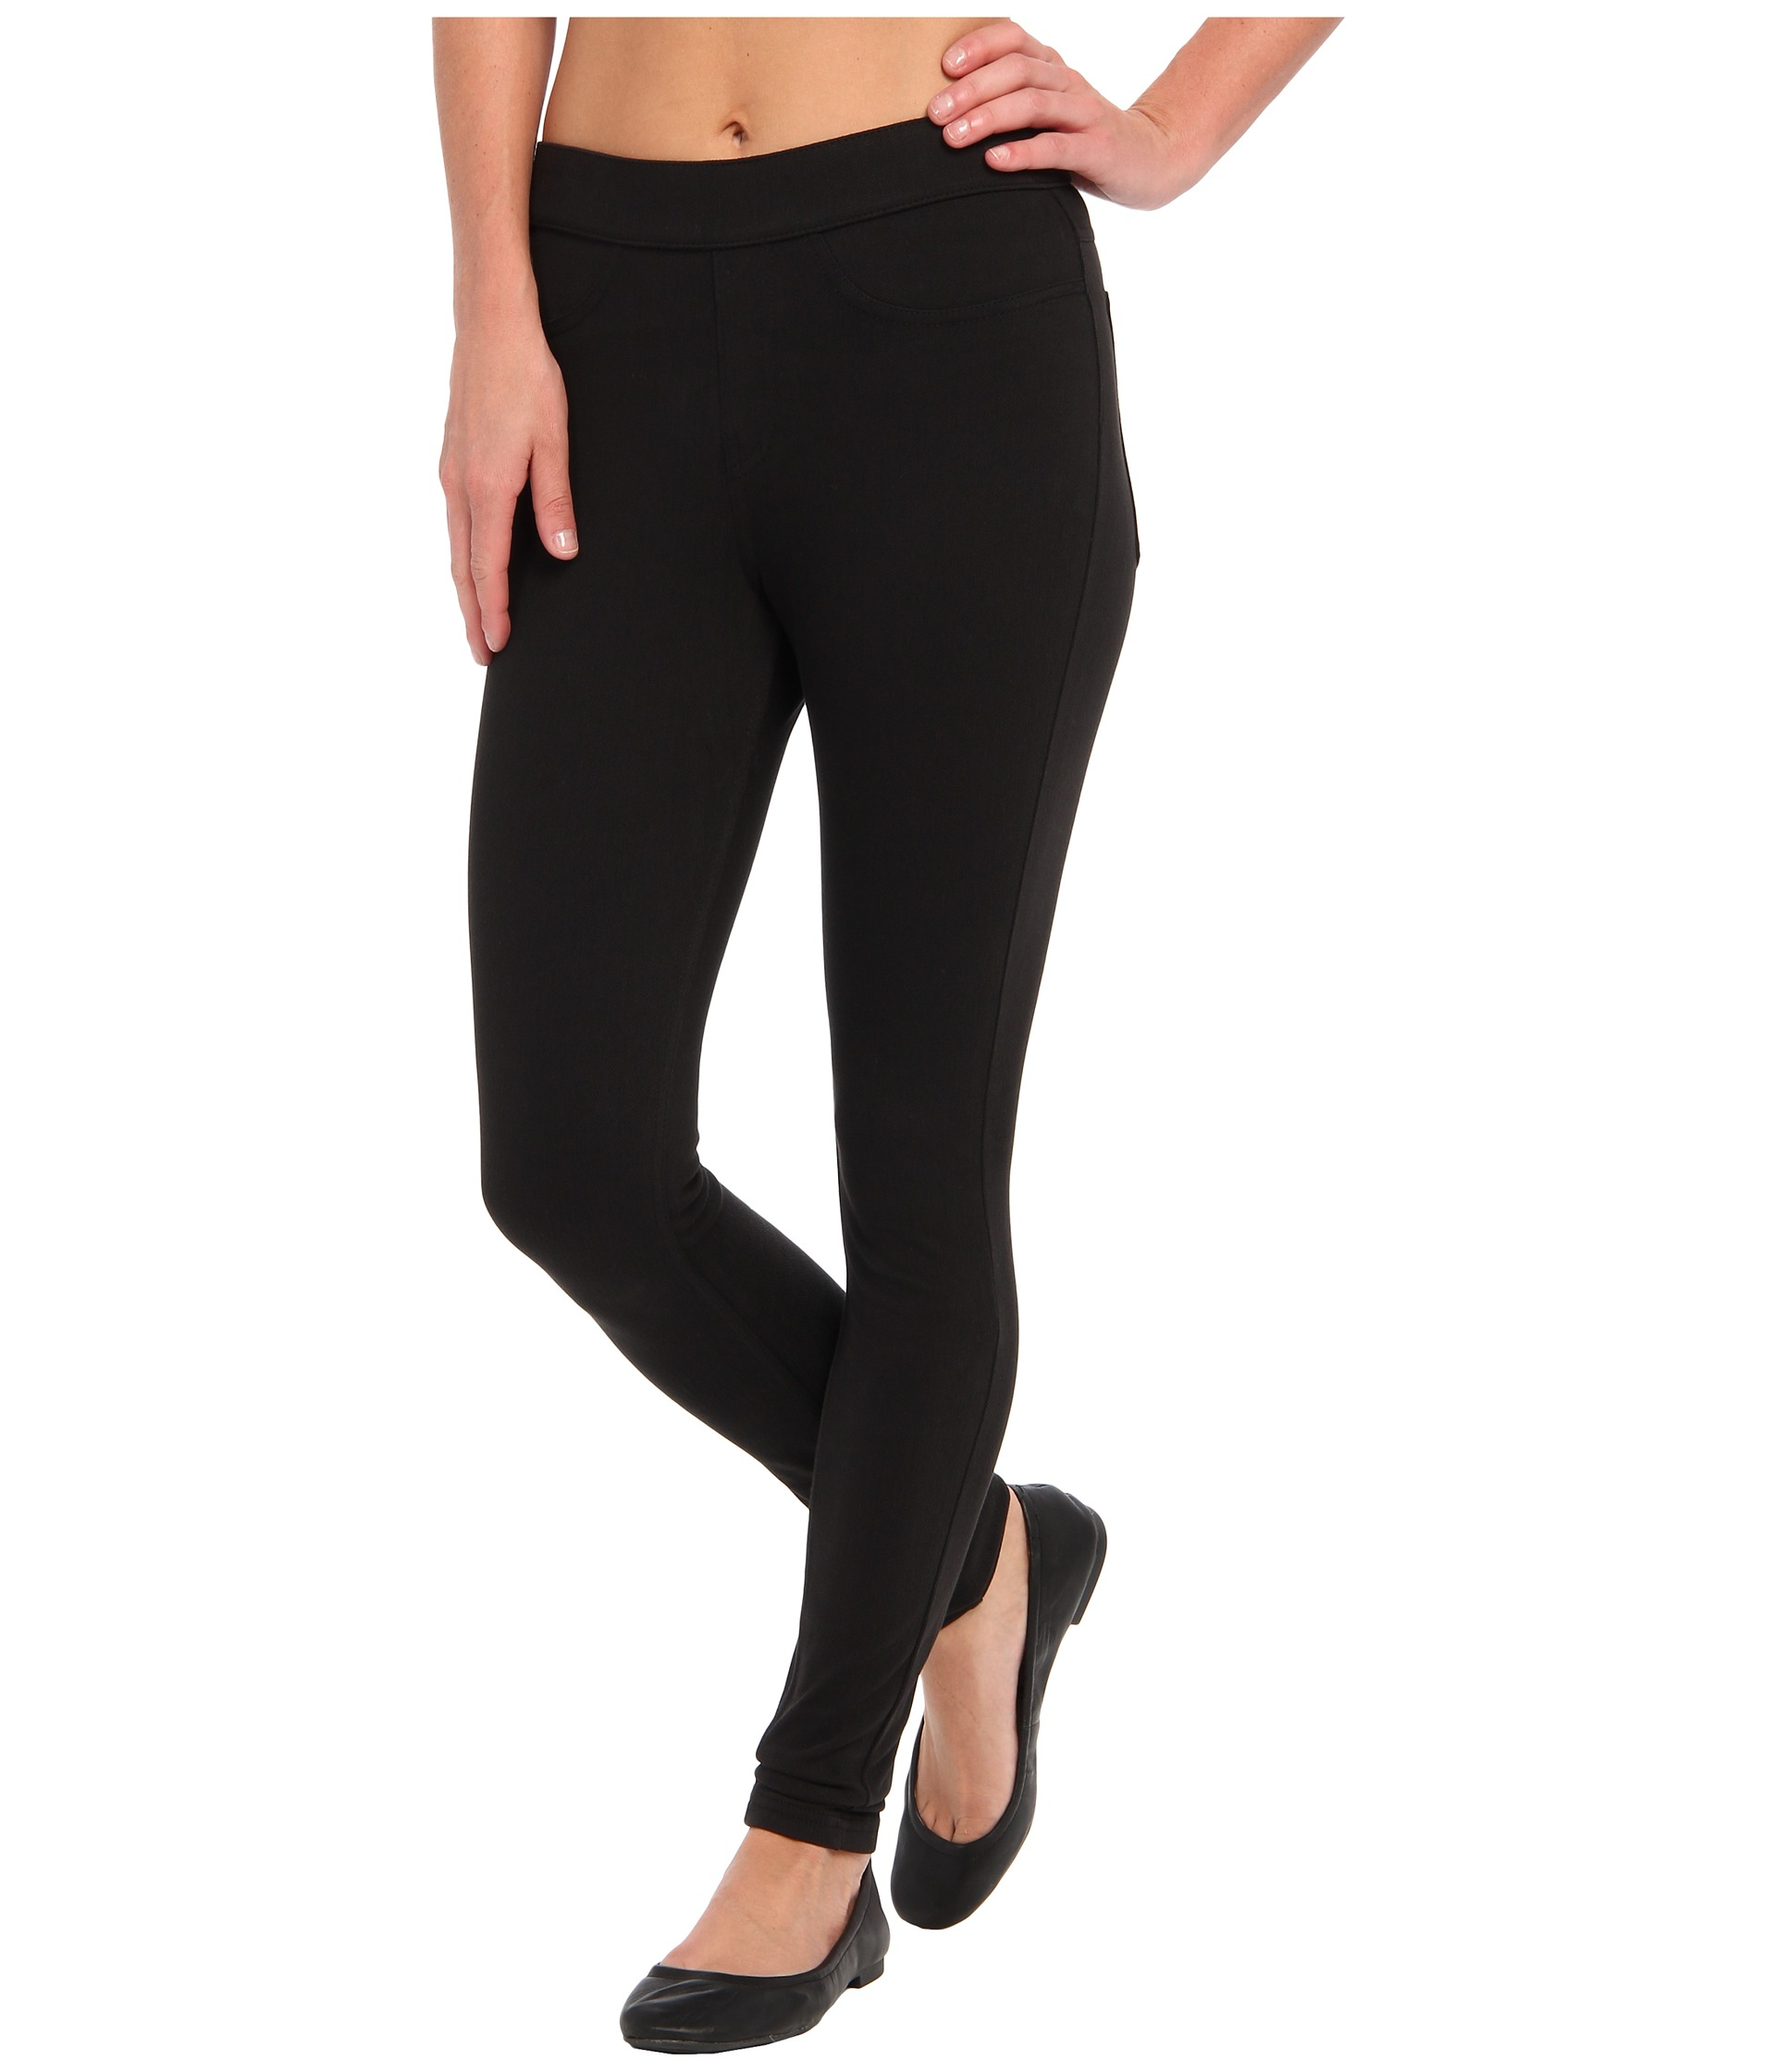 Find great deals on eBay for curvy jeans black. Shop with confidence.